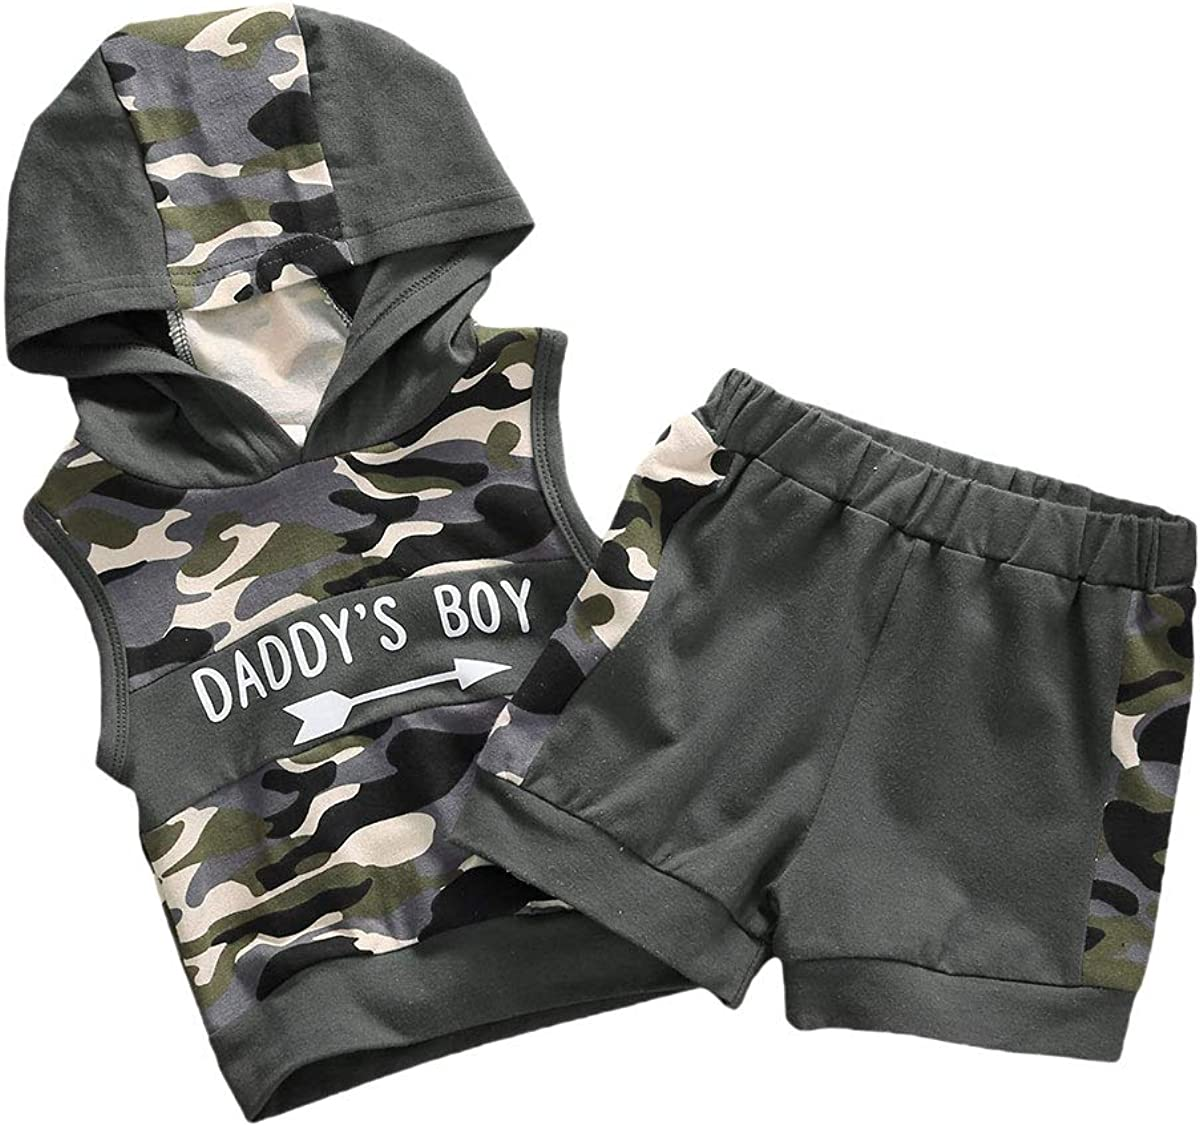 Newborn Toddler Baby Boys Camouflage Clothes Long Sleeve Hoodie Camo Pocket Sweatsuit Top Pants Fall Winter 2Pcs Outfit Set